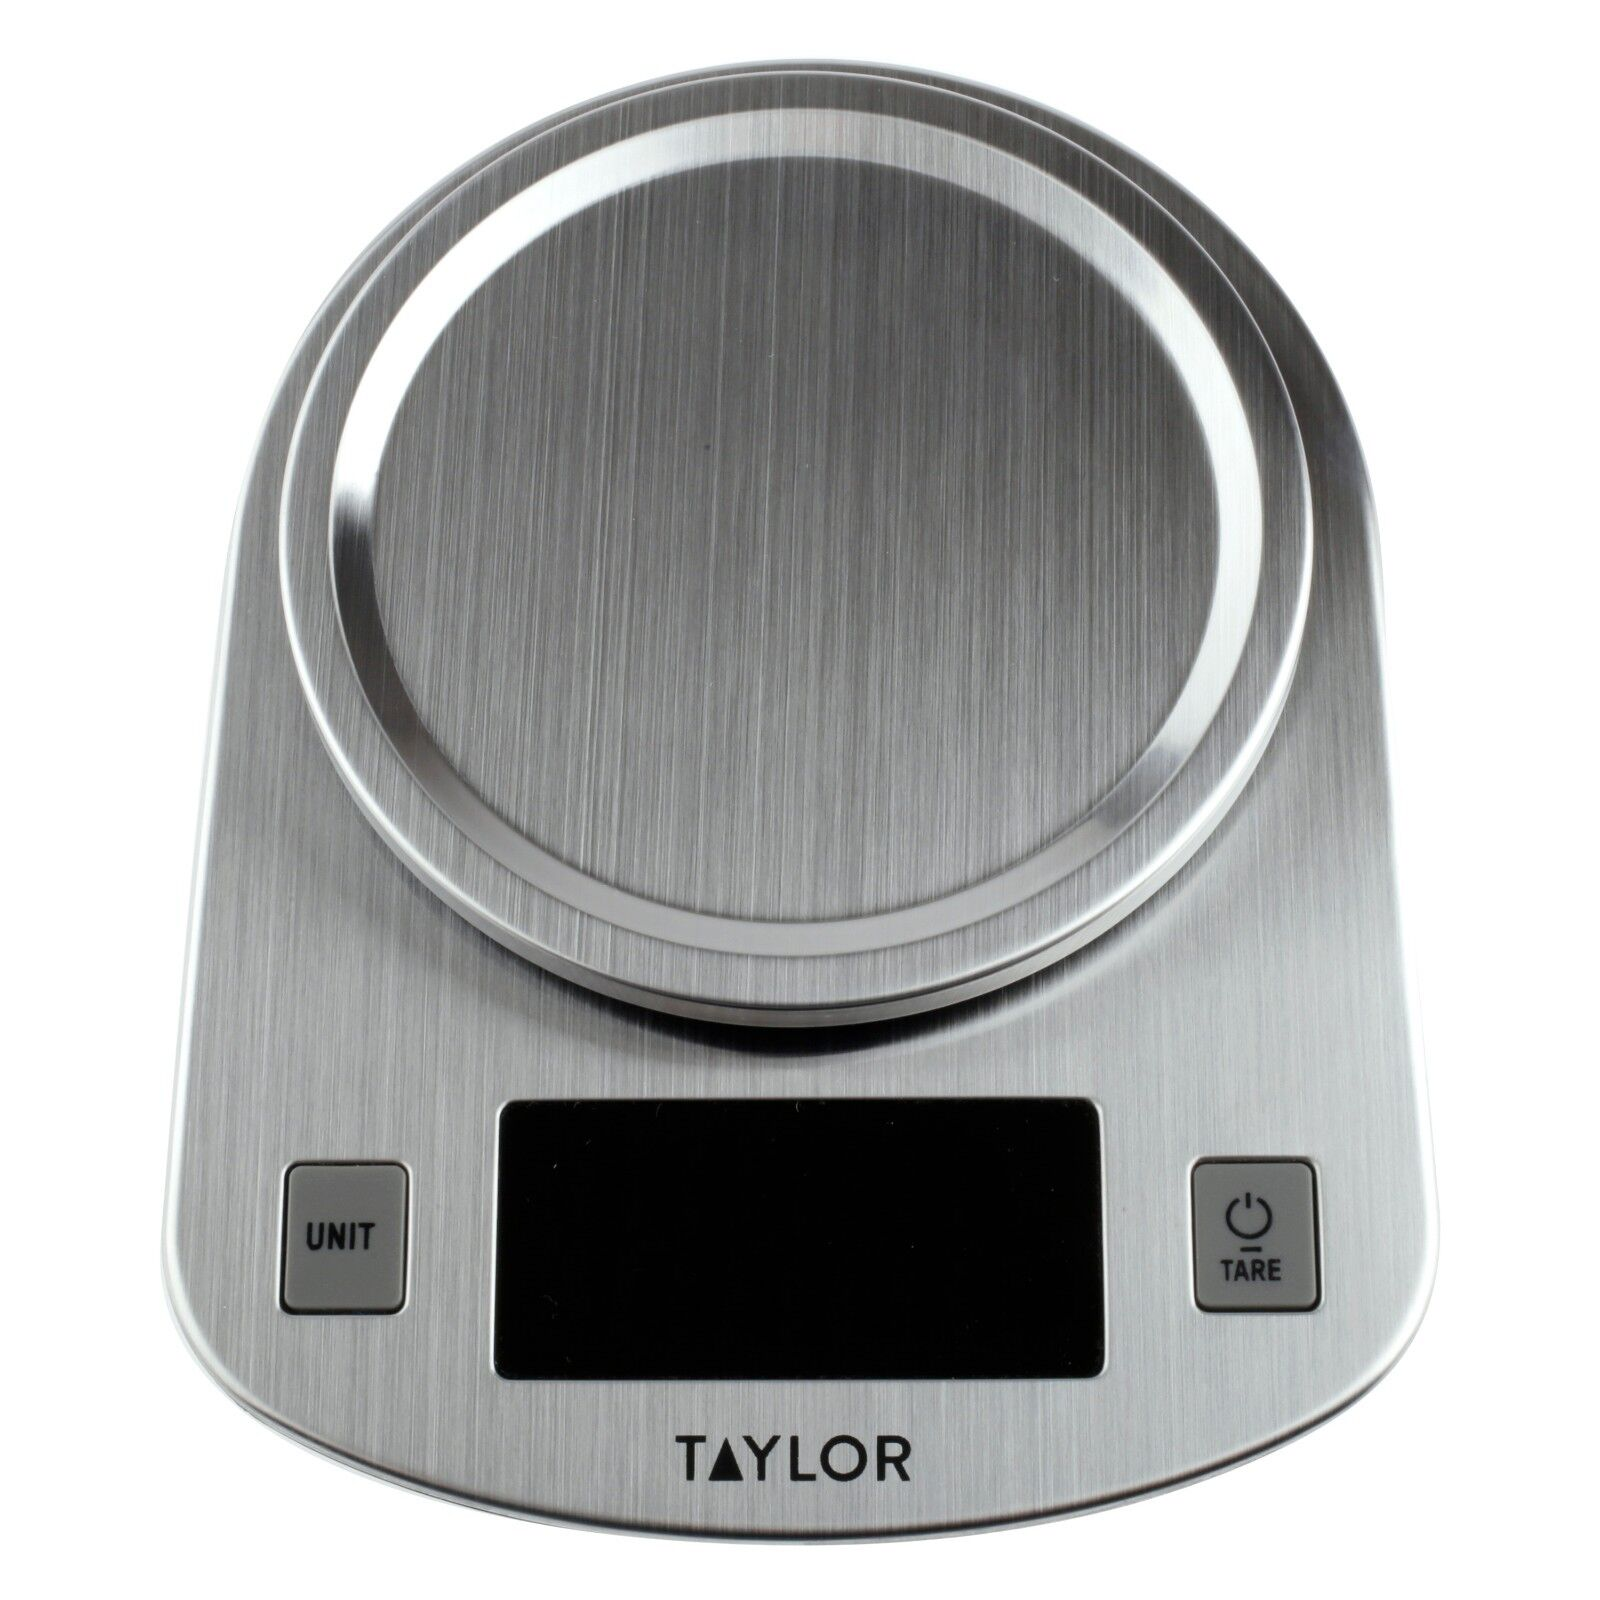 New Taylor, Stainless Steel, LED Kitchen Scale, 11 LB Capaci